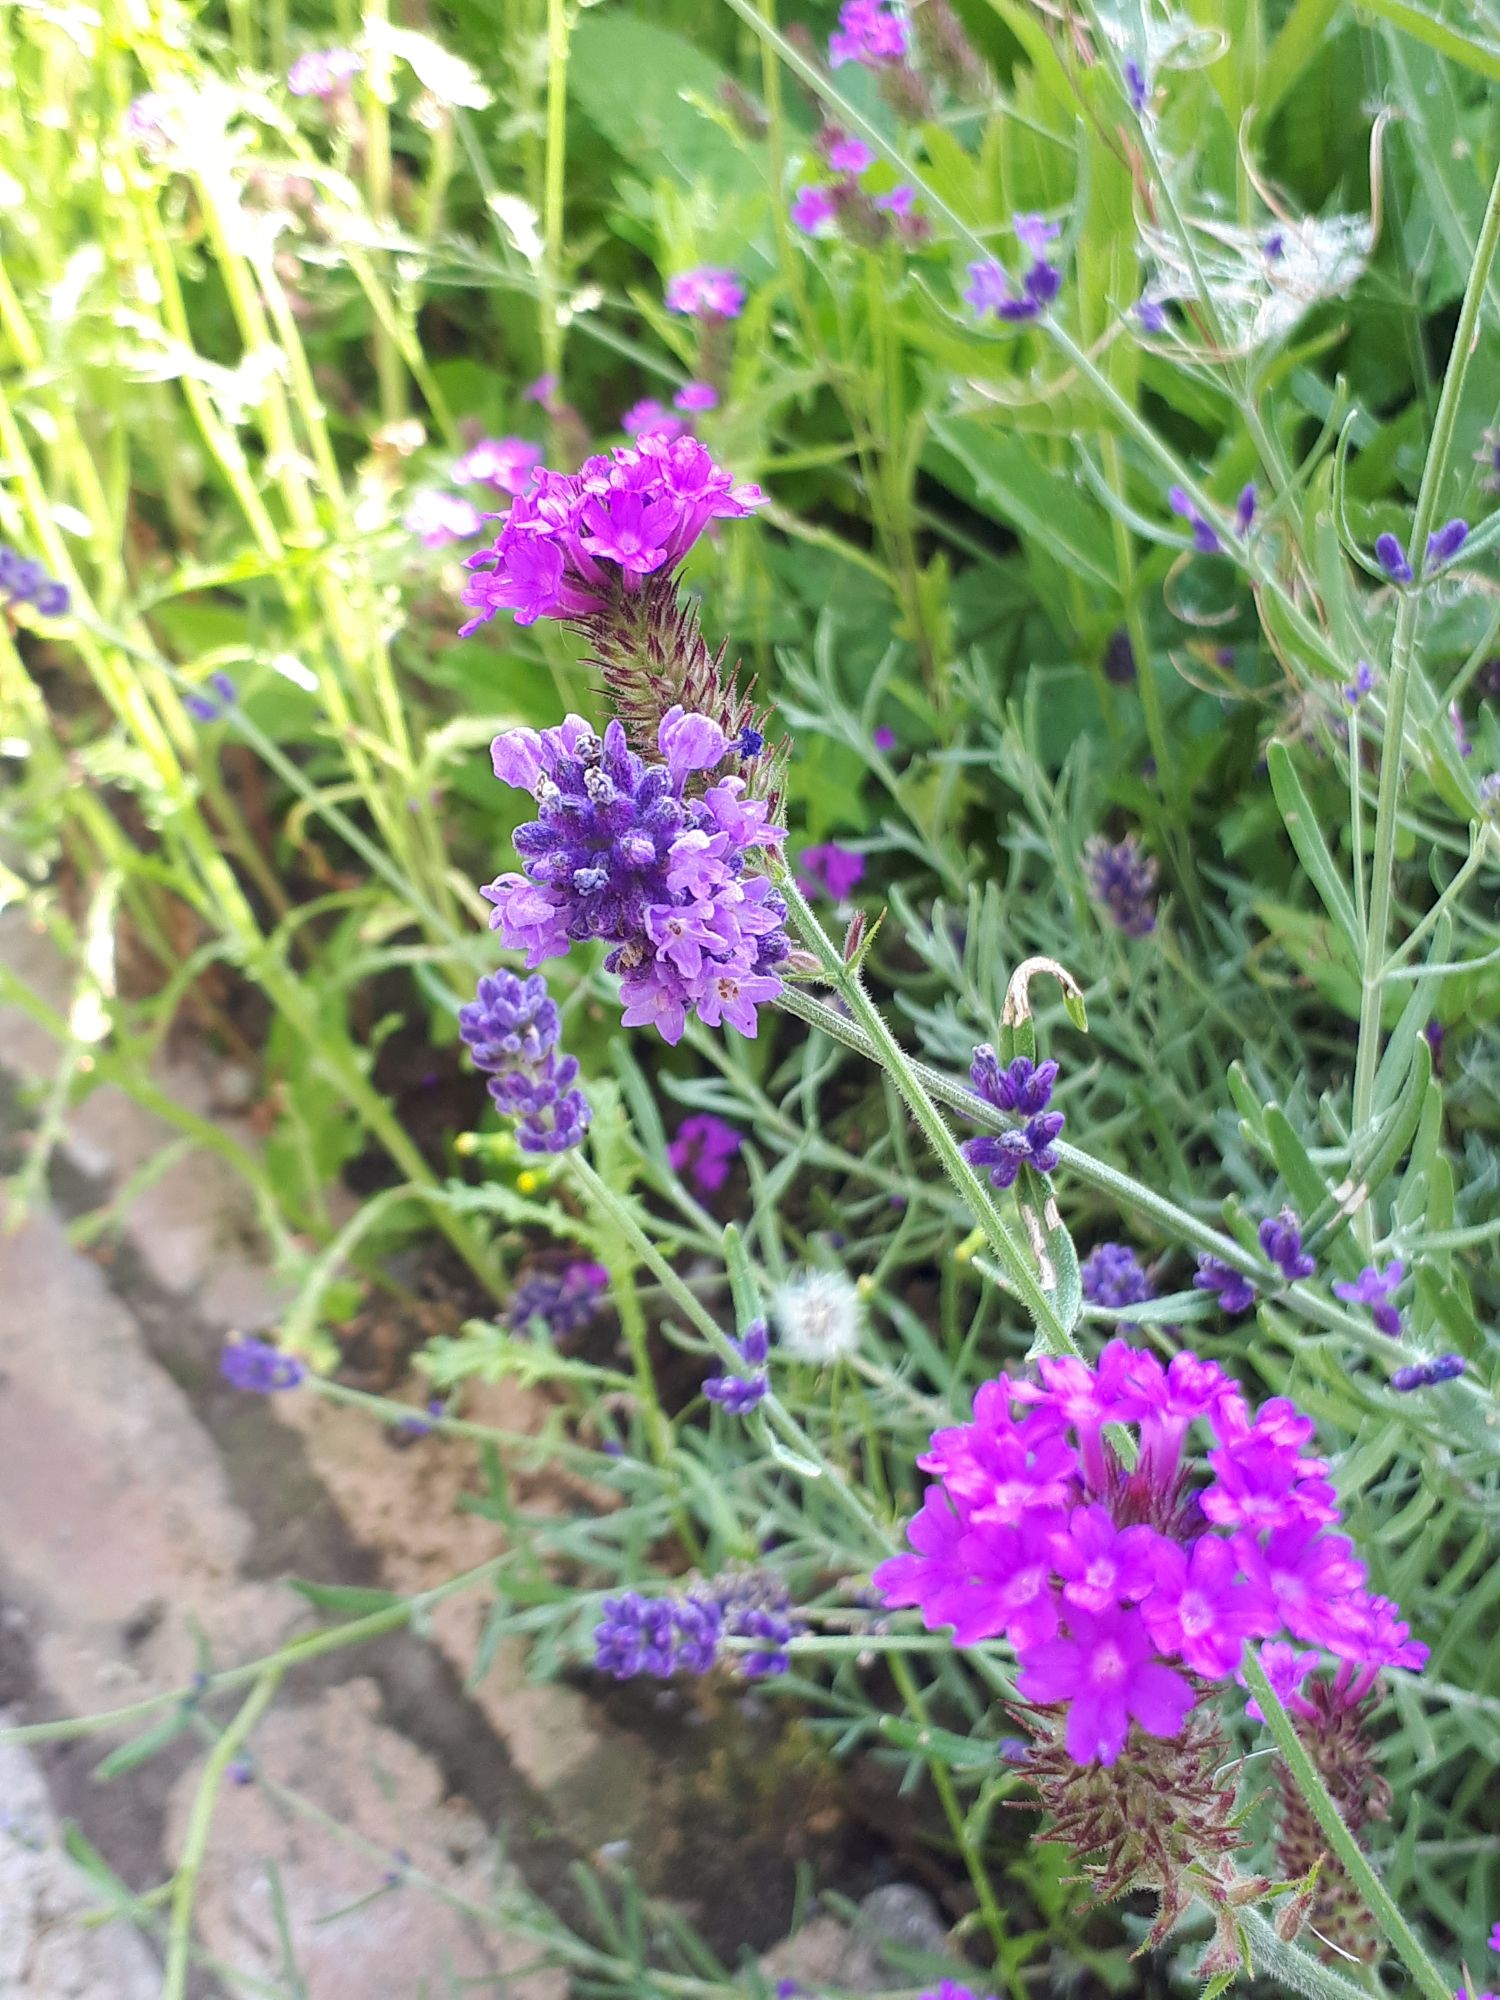 Lavender and purple Verbena in harmony against a foil of bluish grey foliage